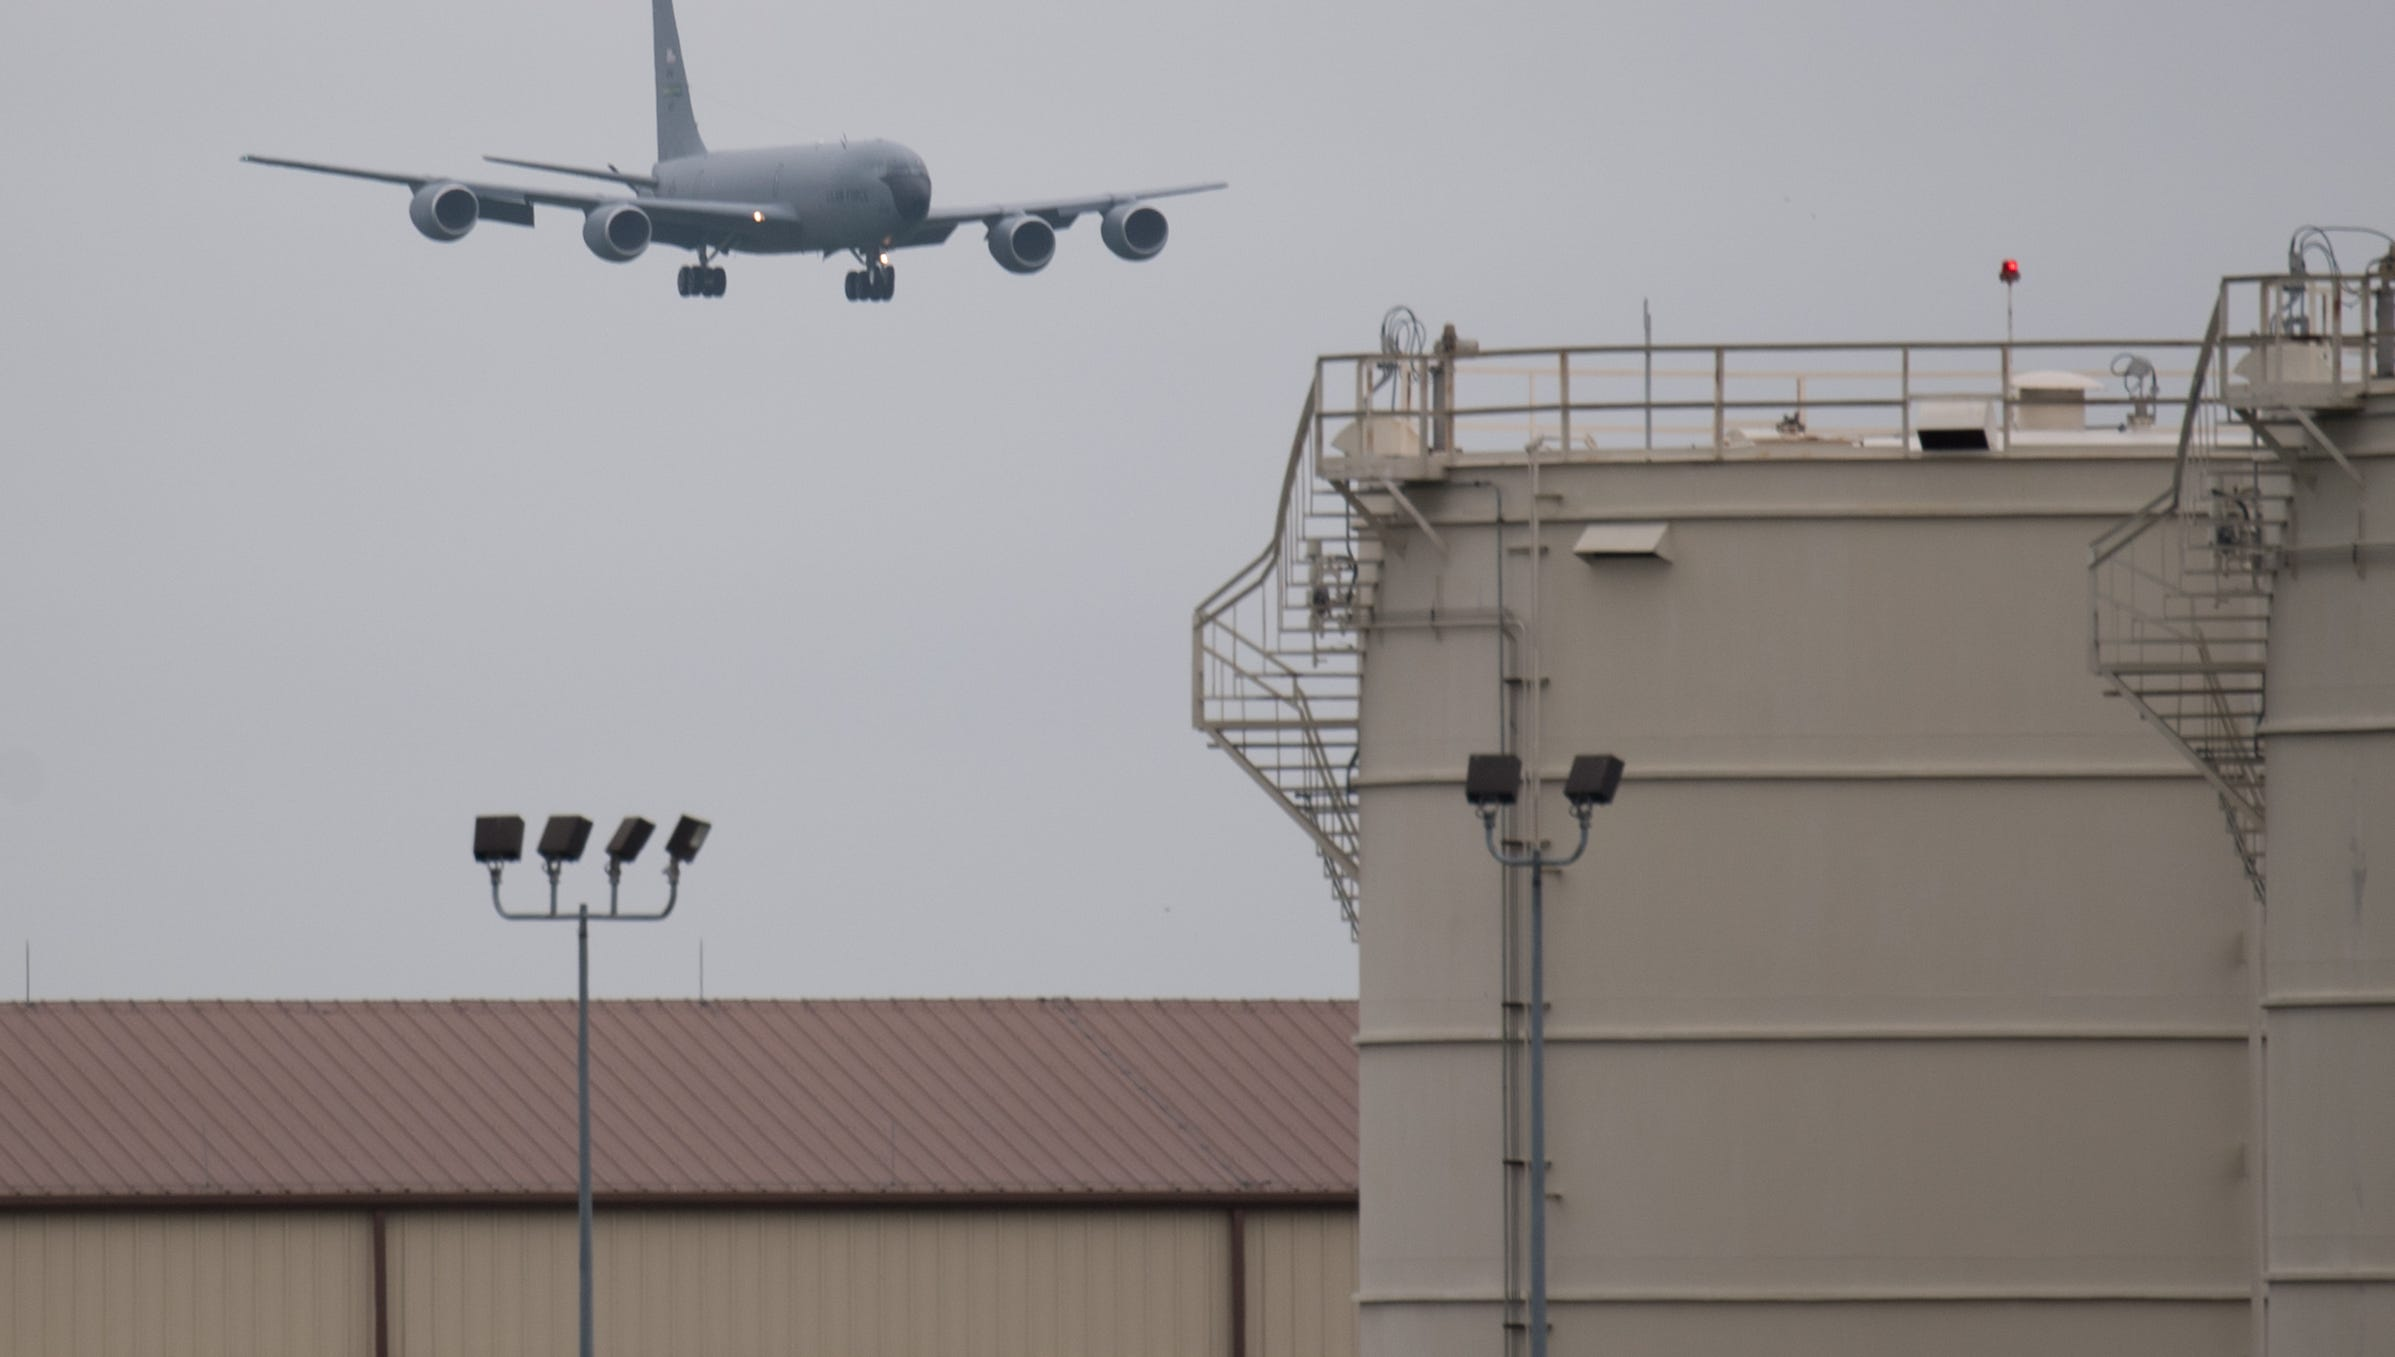 A KC-135 Stratotanker, from Seymour Johnson, North Carolina, arrives at Barksdale Air Force Base, La., Sept. 12, 2018. The aircraft evacuated to Barksdale to avoid possible damage from Hurricane Florence. (U.S. Air Force photo by Senior Airman Stuart Bright)